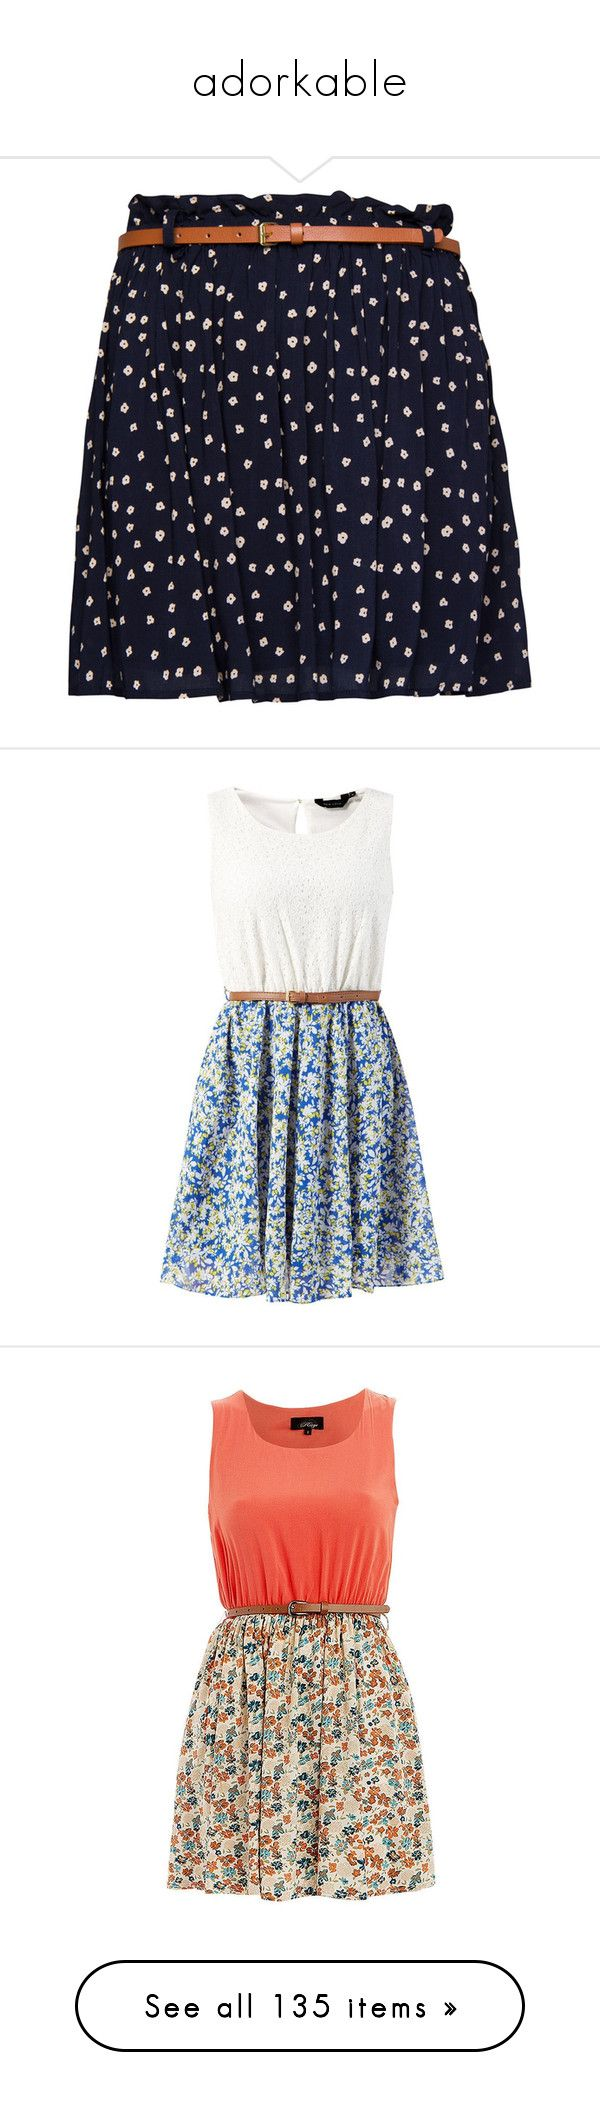 """""""adorkable"""" by coralkahler ❤ liked on Polyvore featuring skirts, bottoms, saias, faldas, navy, navy blue flared skirt, floral skater skirts, navy flared skirt, navy skater skirt and navy floral skirt"""